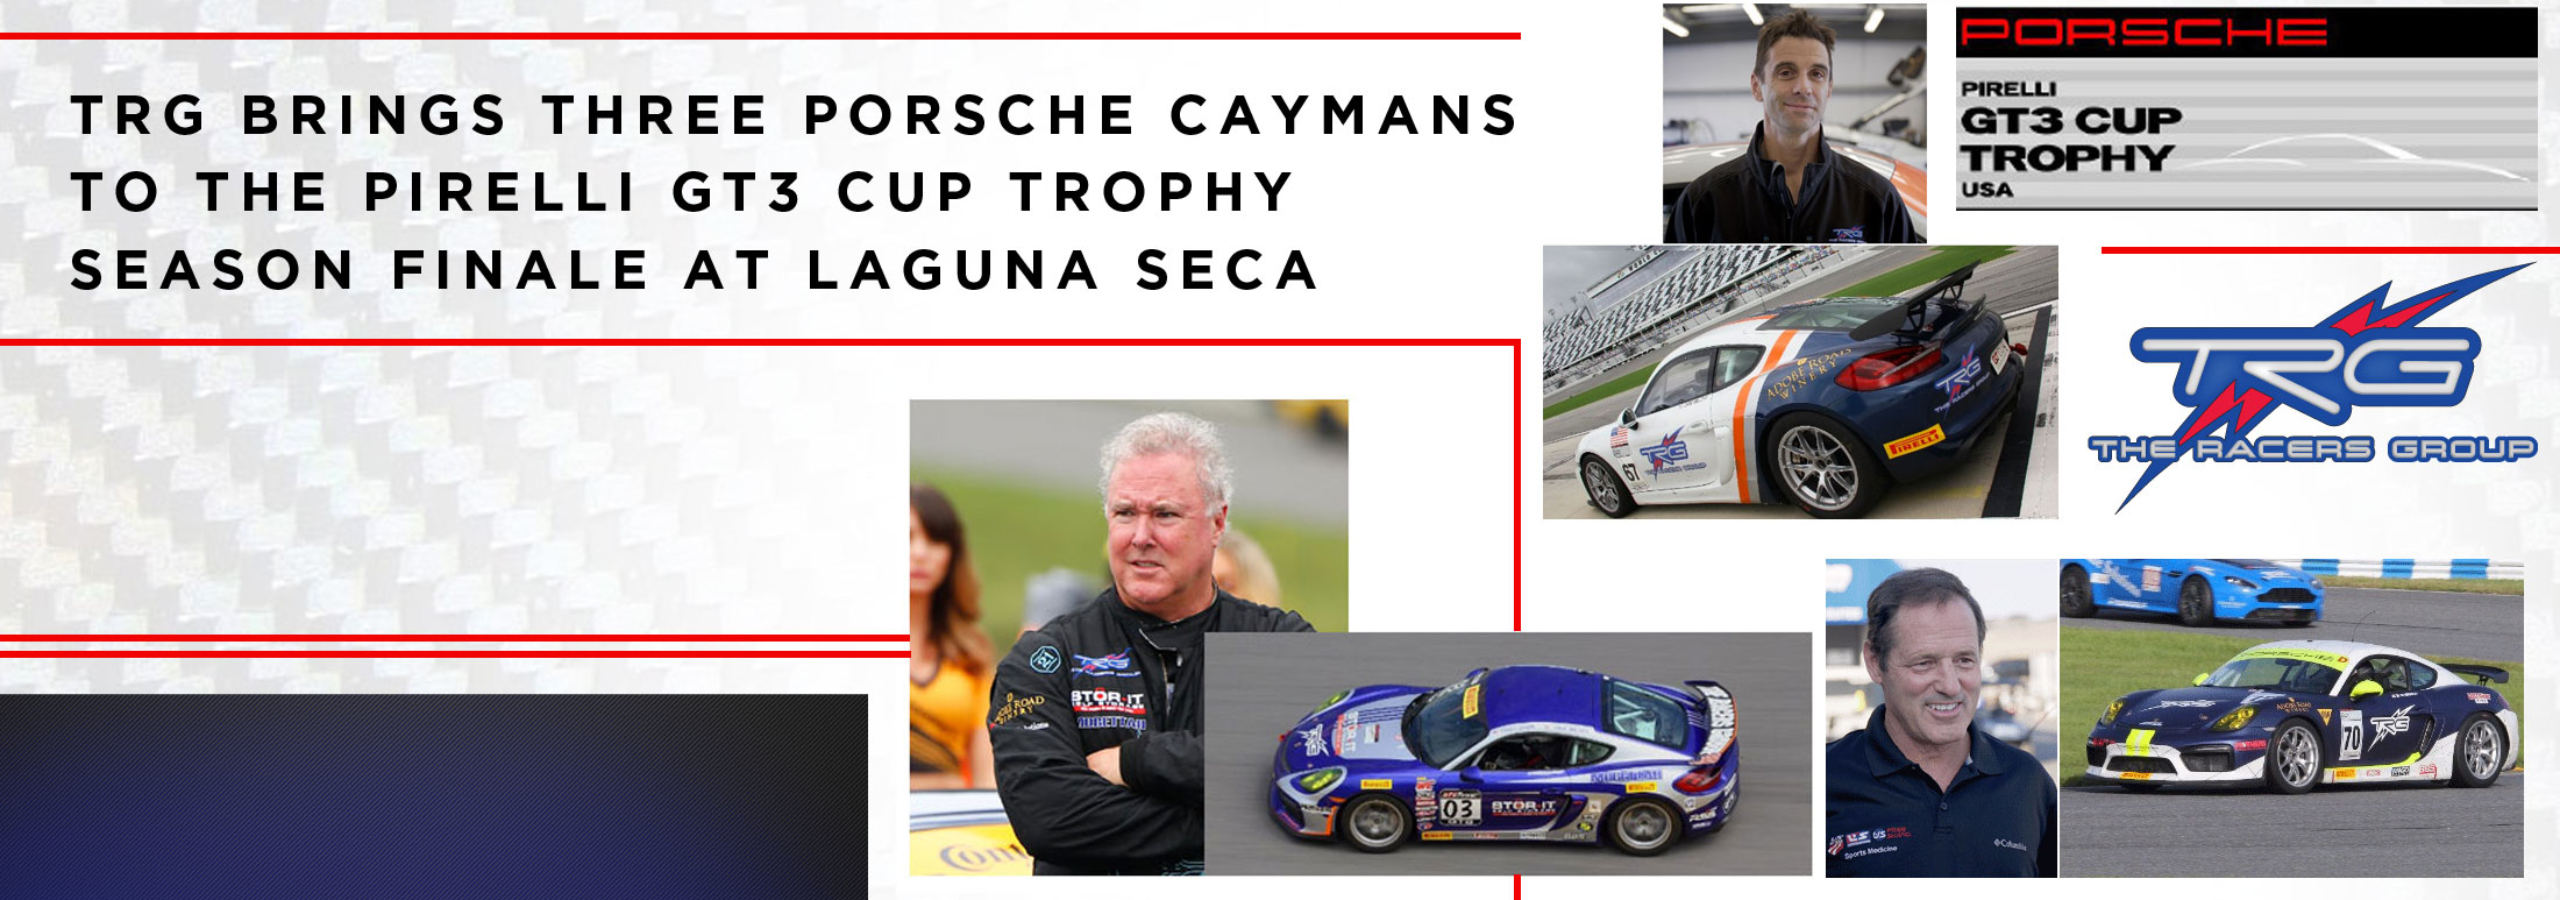 TRG Brings Three Porsche Caymans to the Pirelli GT3 Cup Trophy Season Finale at Laguna Seca